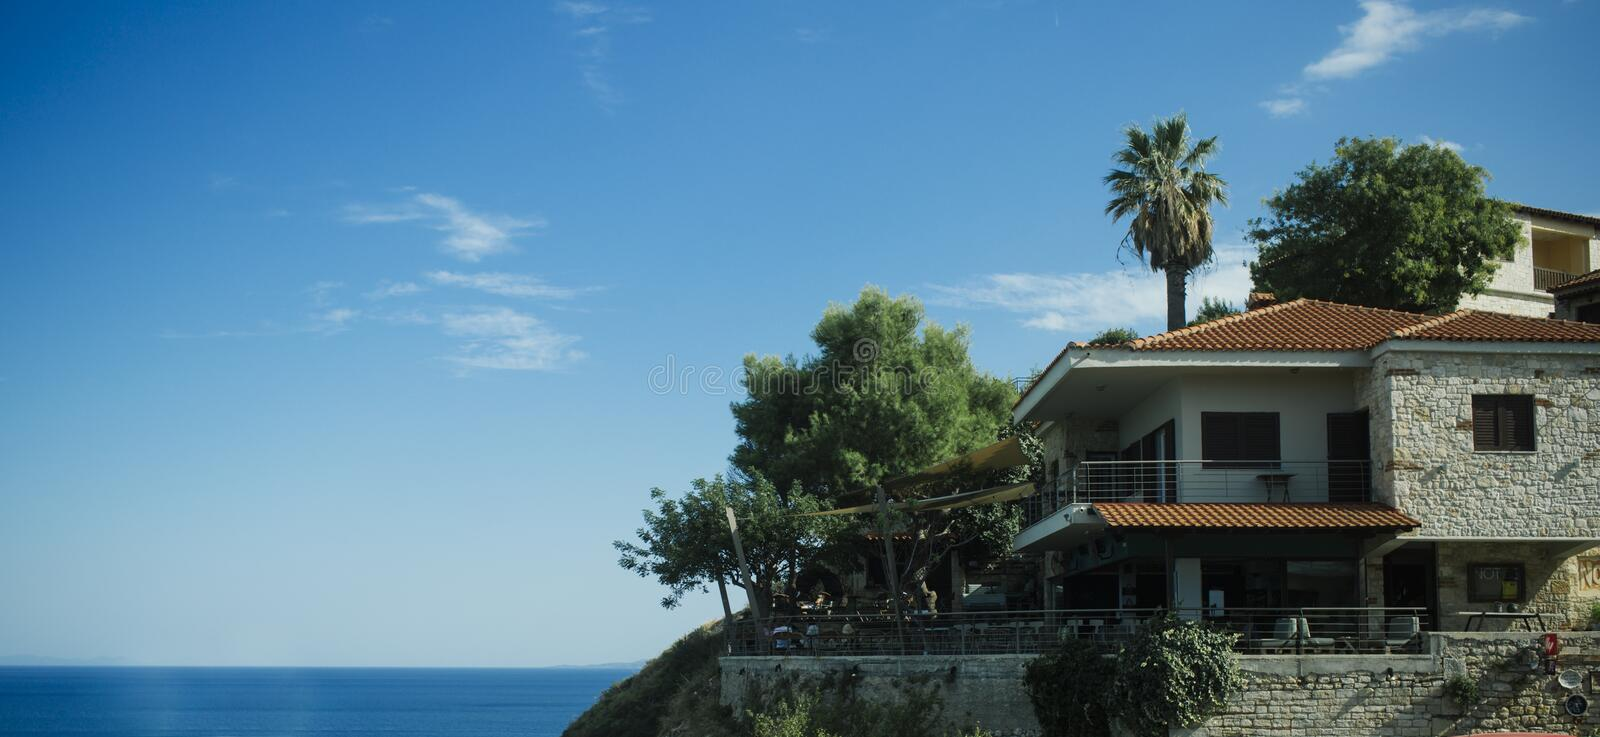 Luxury summer house on hilly sea coast. Building with garden, trees and palm tree. Villa near sea with blue sky on background on. Sunny day, copy space. Luxury stock photography